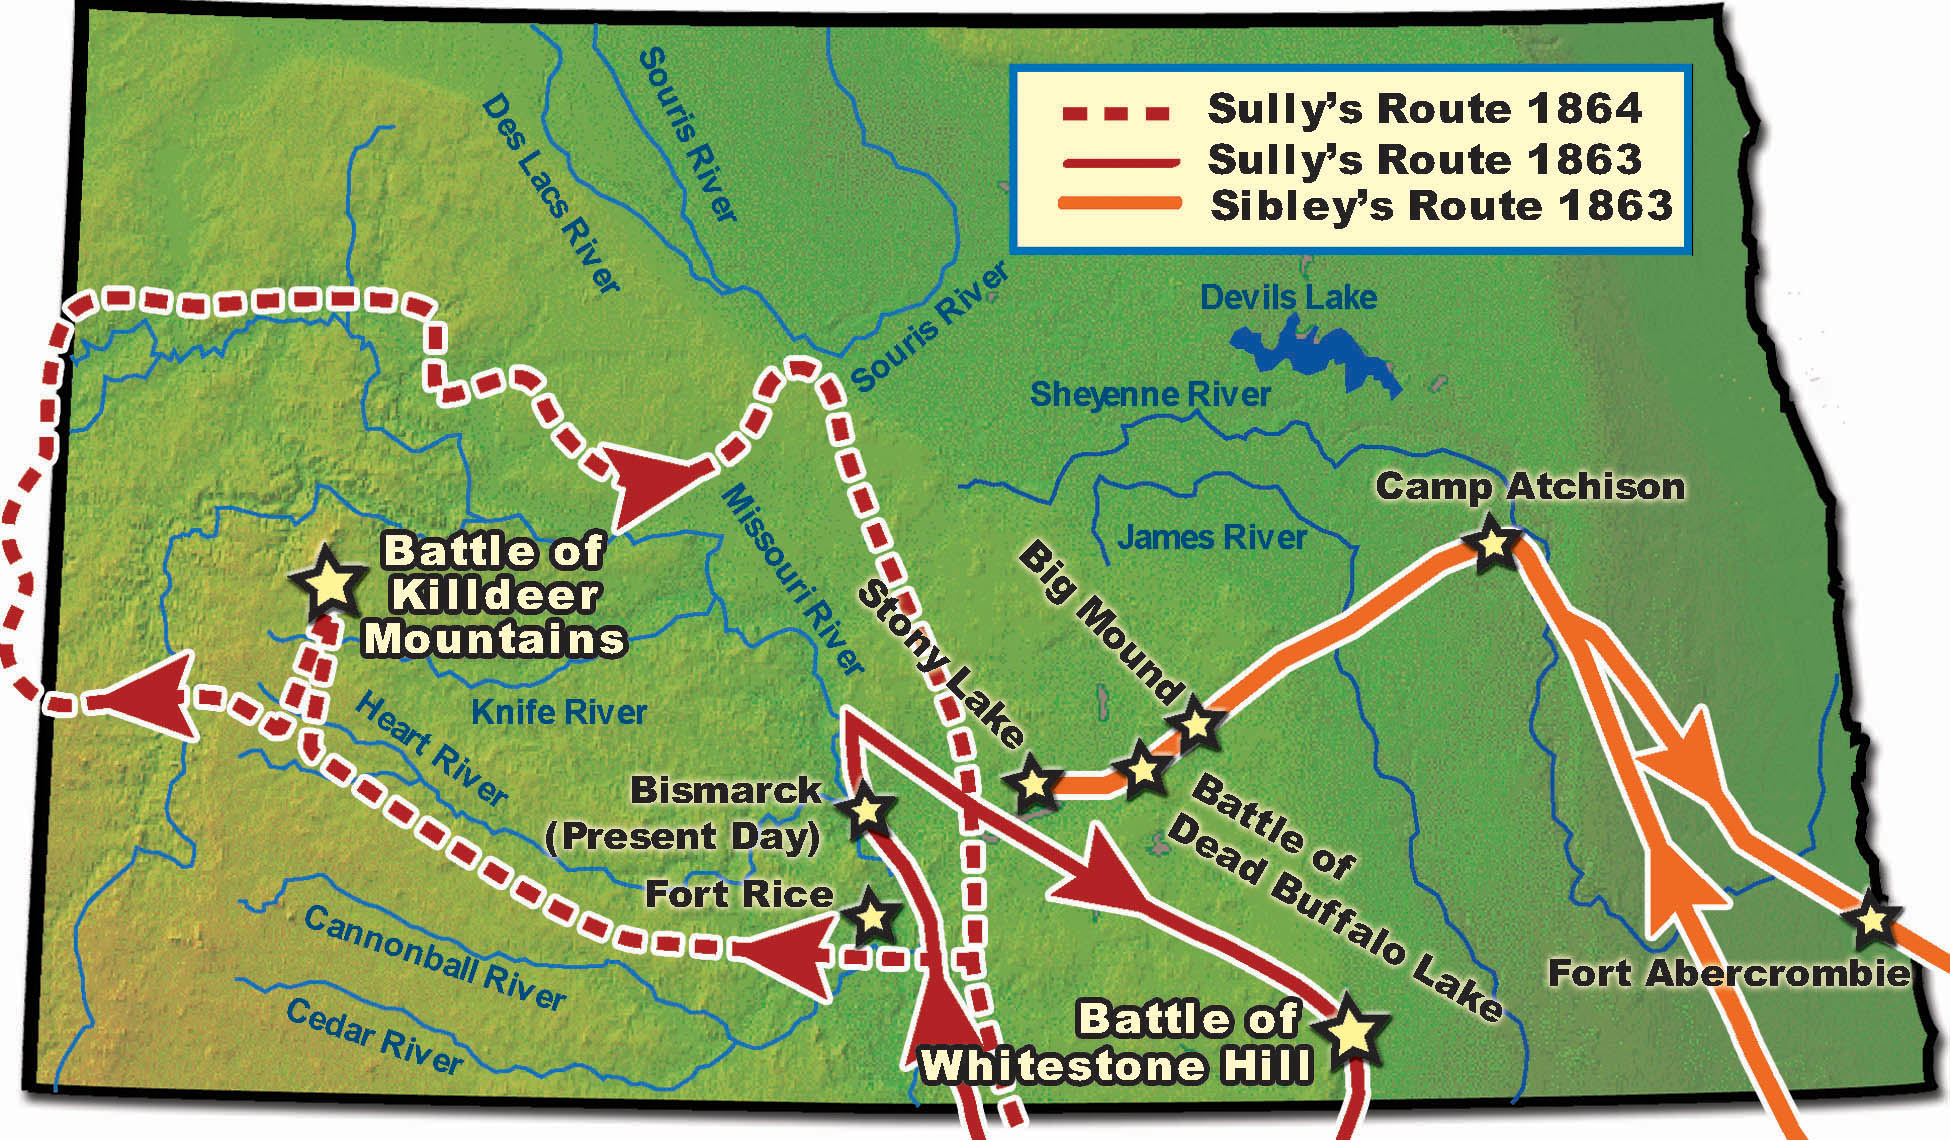 The routes of Sibley and Sully